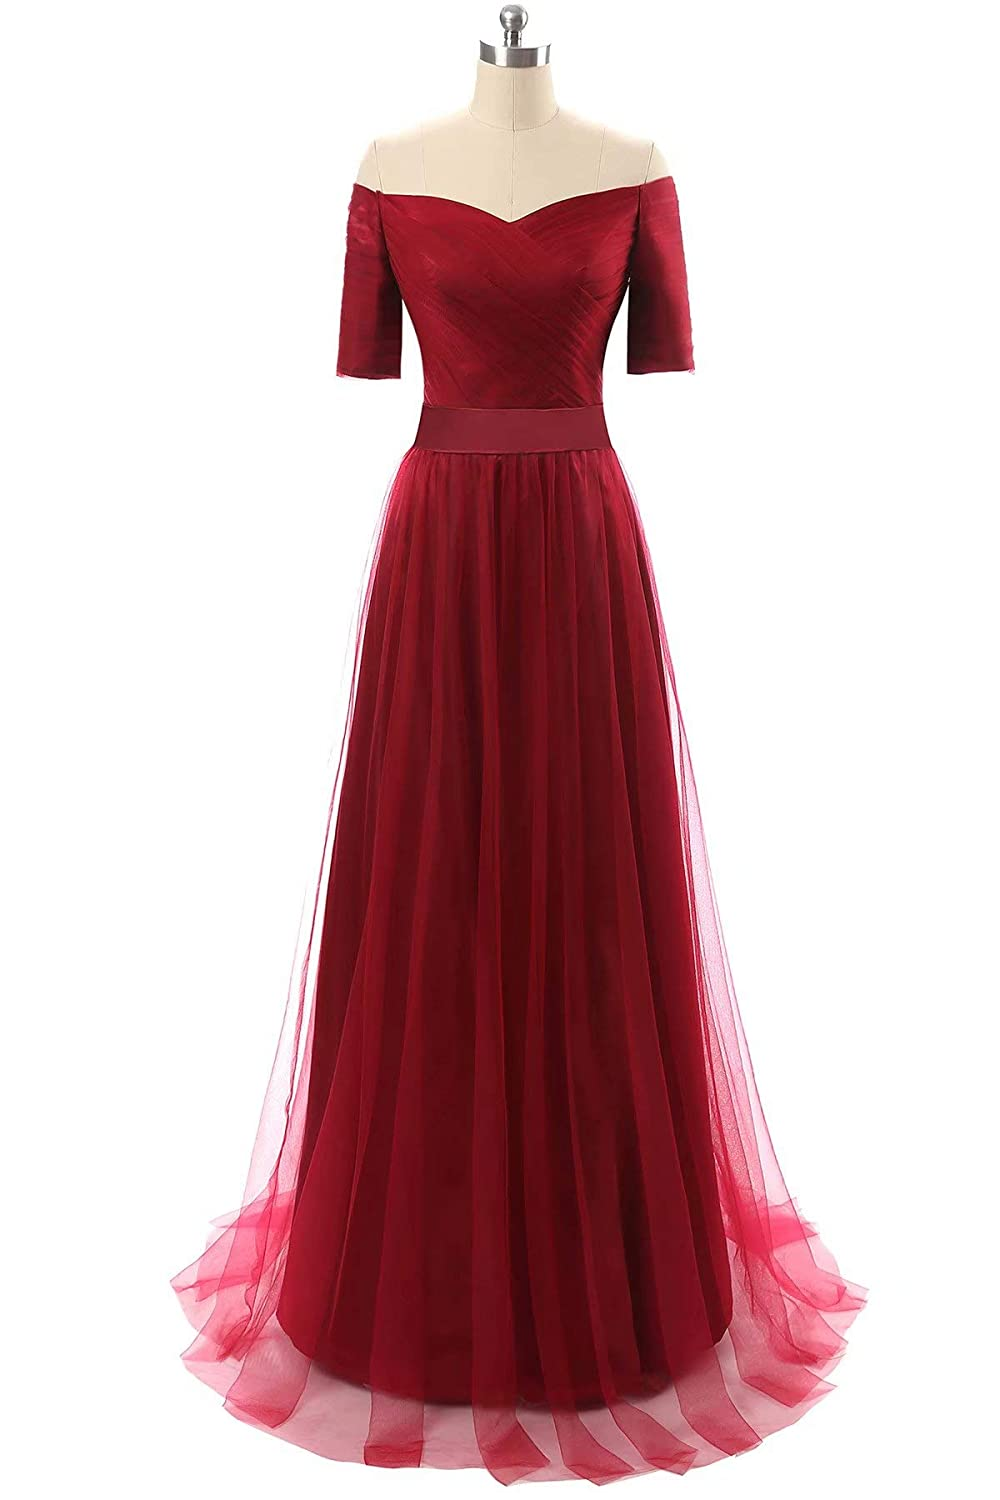 Red Honeywedding Half Sleeves V Neck Formal Evening Dresses Long Tulle Party Prom Gown